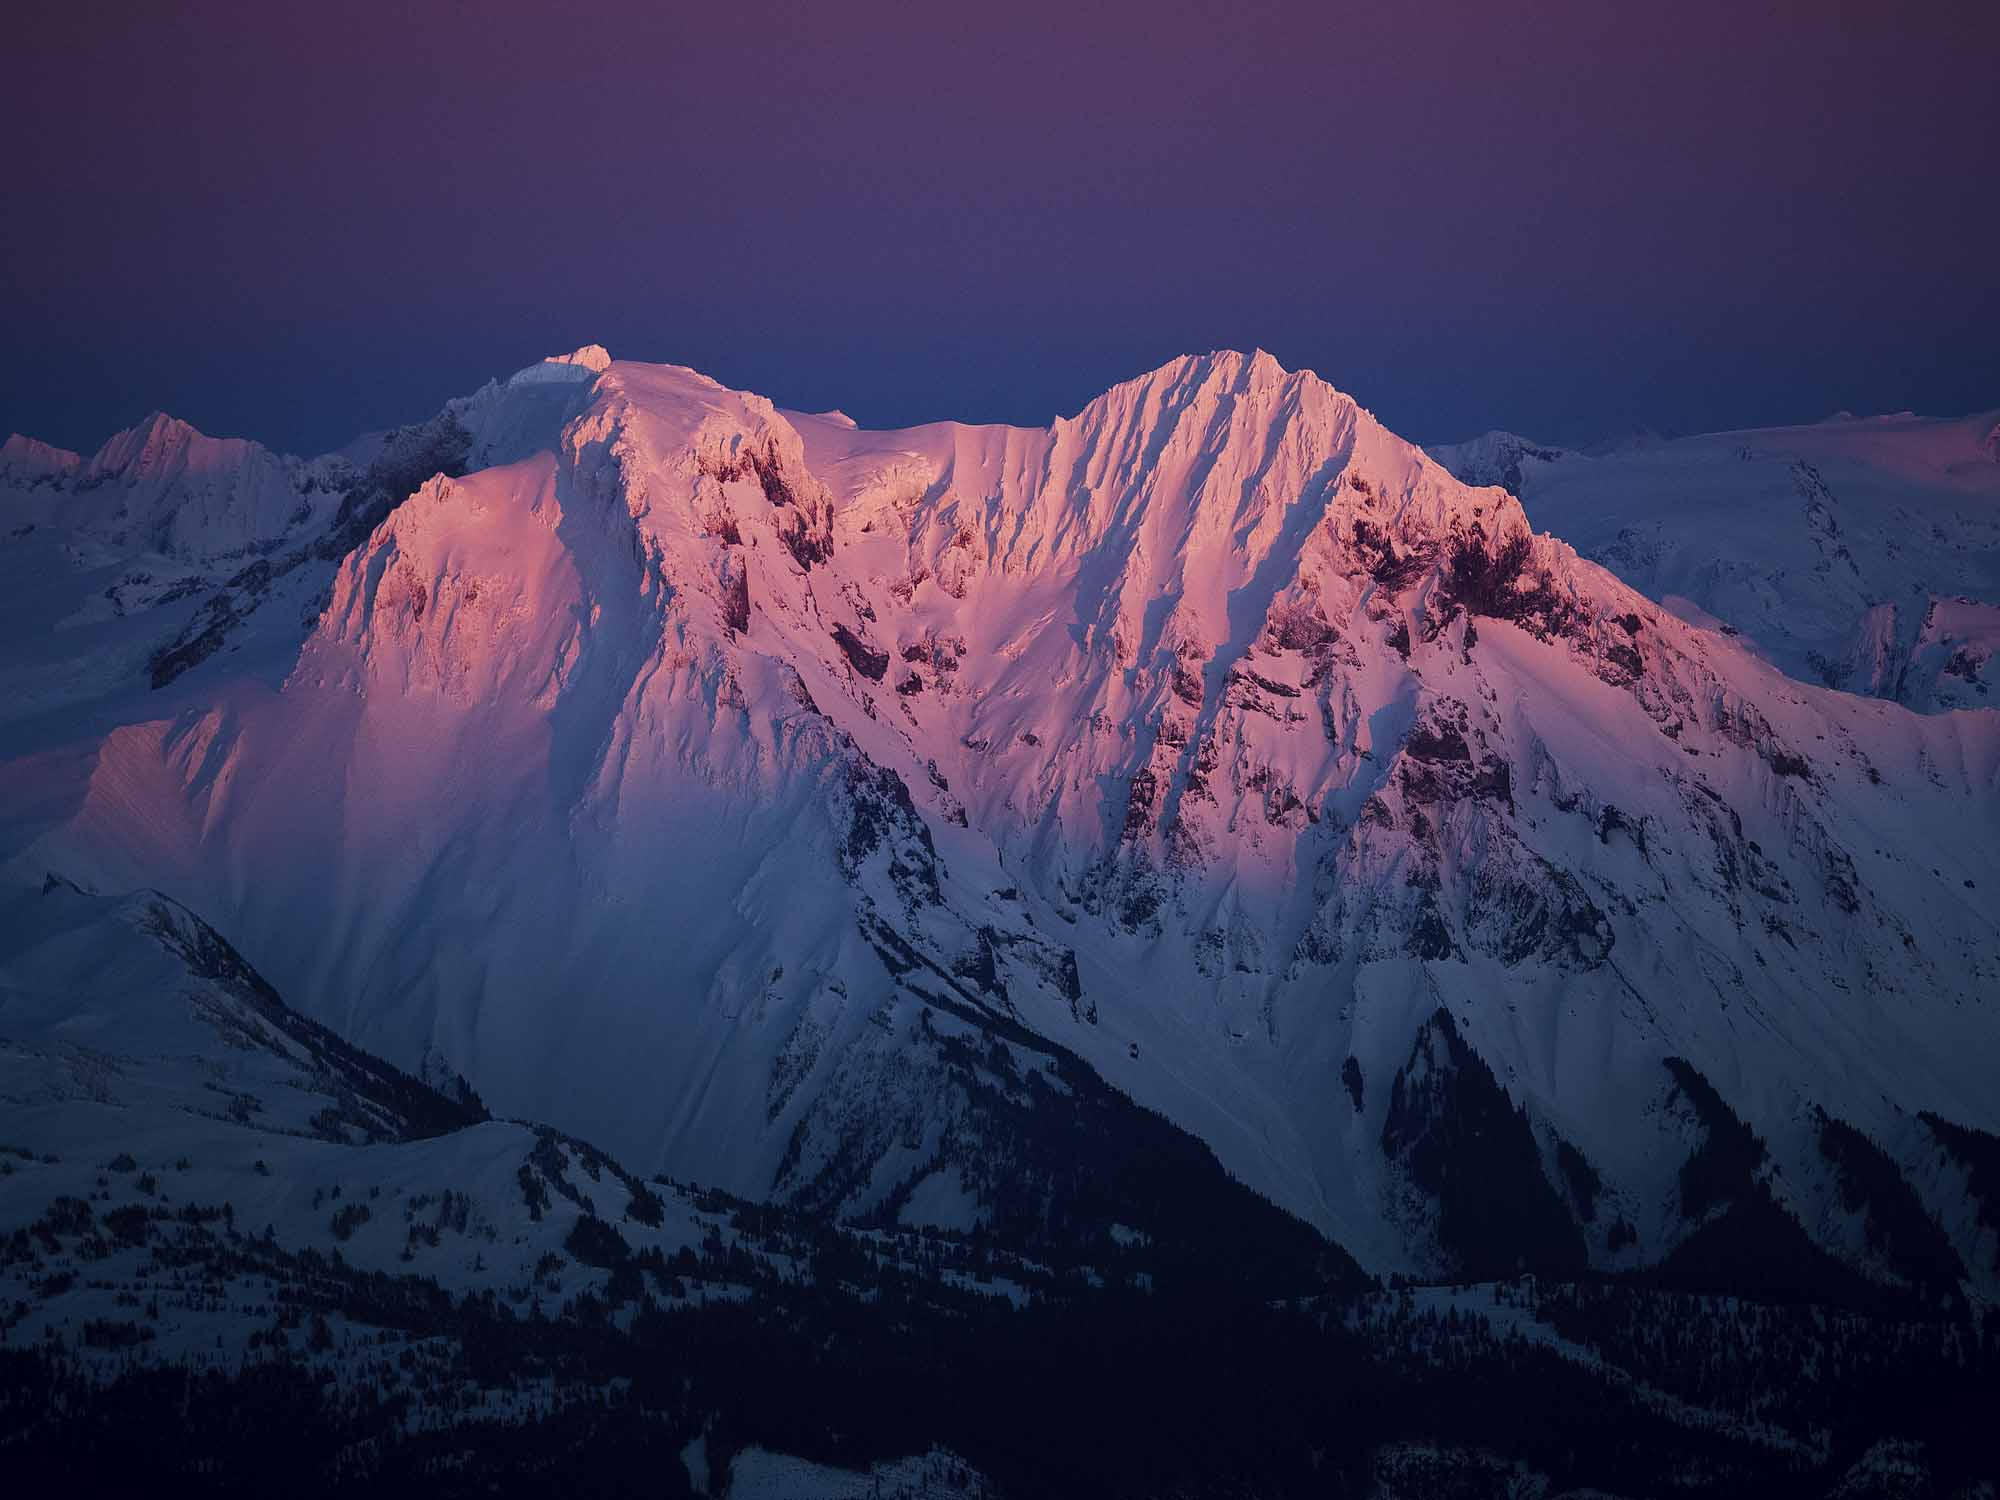 Teachings-from-Nchkay-The-Story-behind-the-Most-Notable-Peak-in-Garibaldi-Provincial-Park-photo-by-Chris-Christie